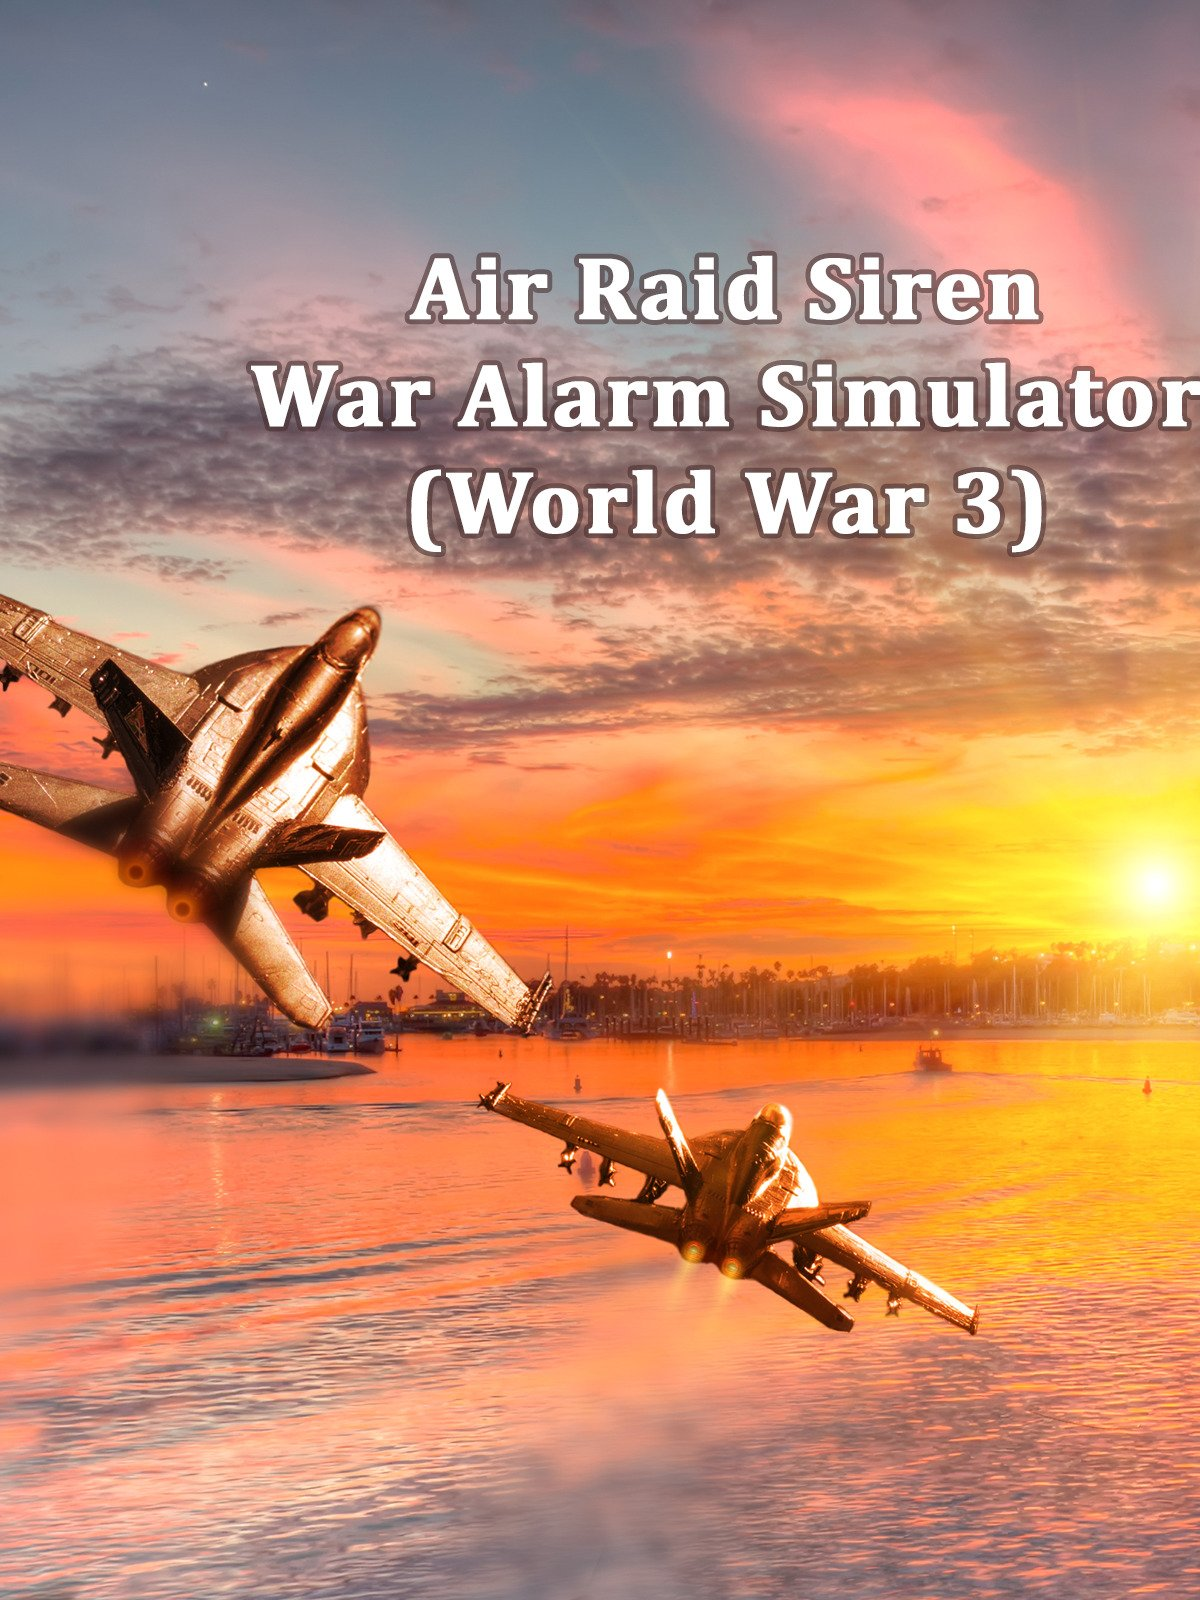 Amazon co uk: Watch Air Raid Siren - War Alarm Simulator